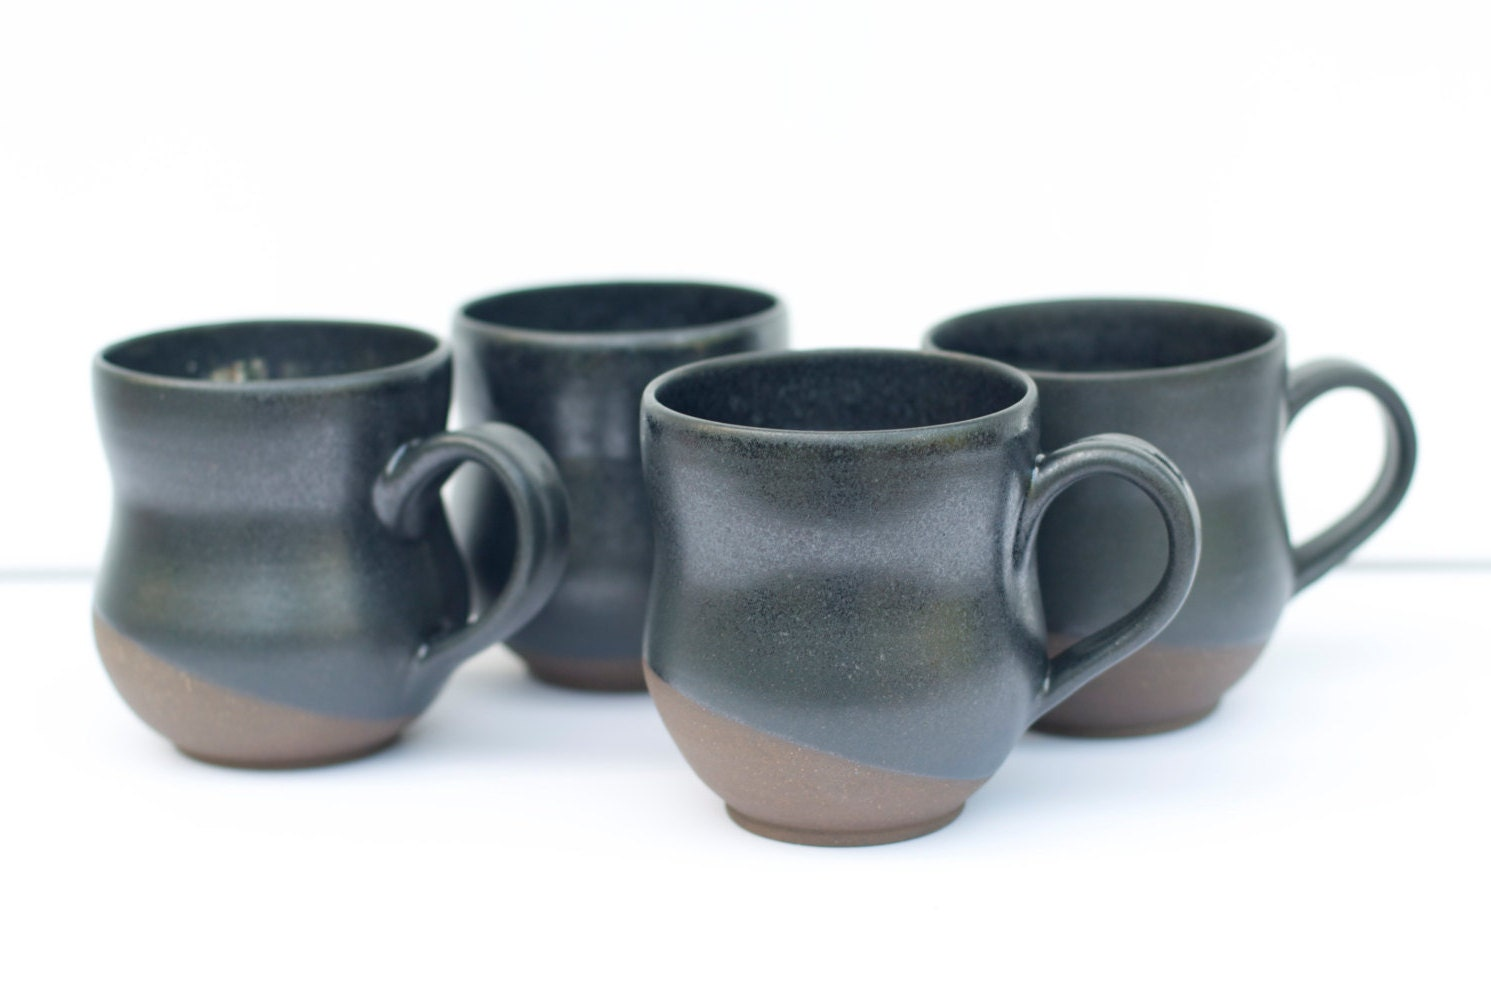 Handmade pottery mug handmade ceramic mugs coffee mugs Unique coffee cups mugs